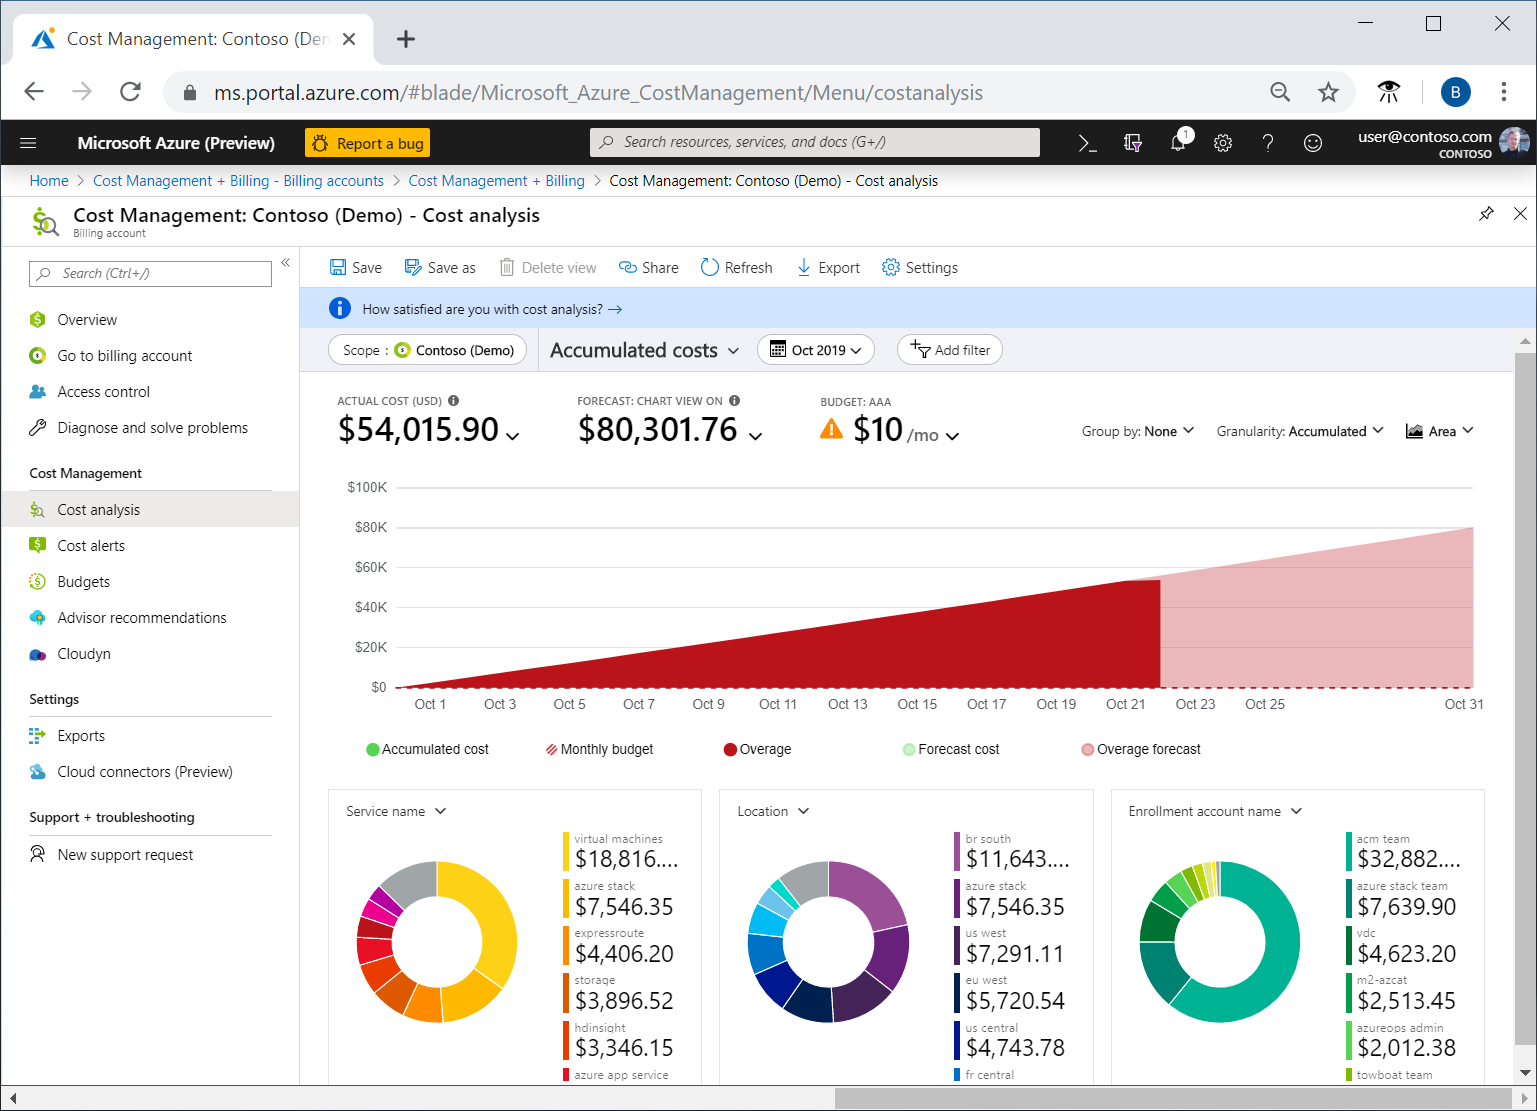 Quickstart - Explore Azure costs with cost analysis